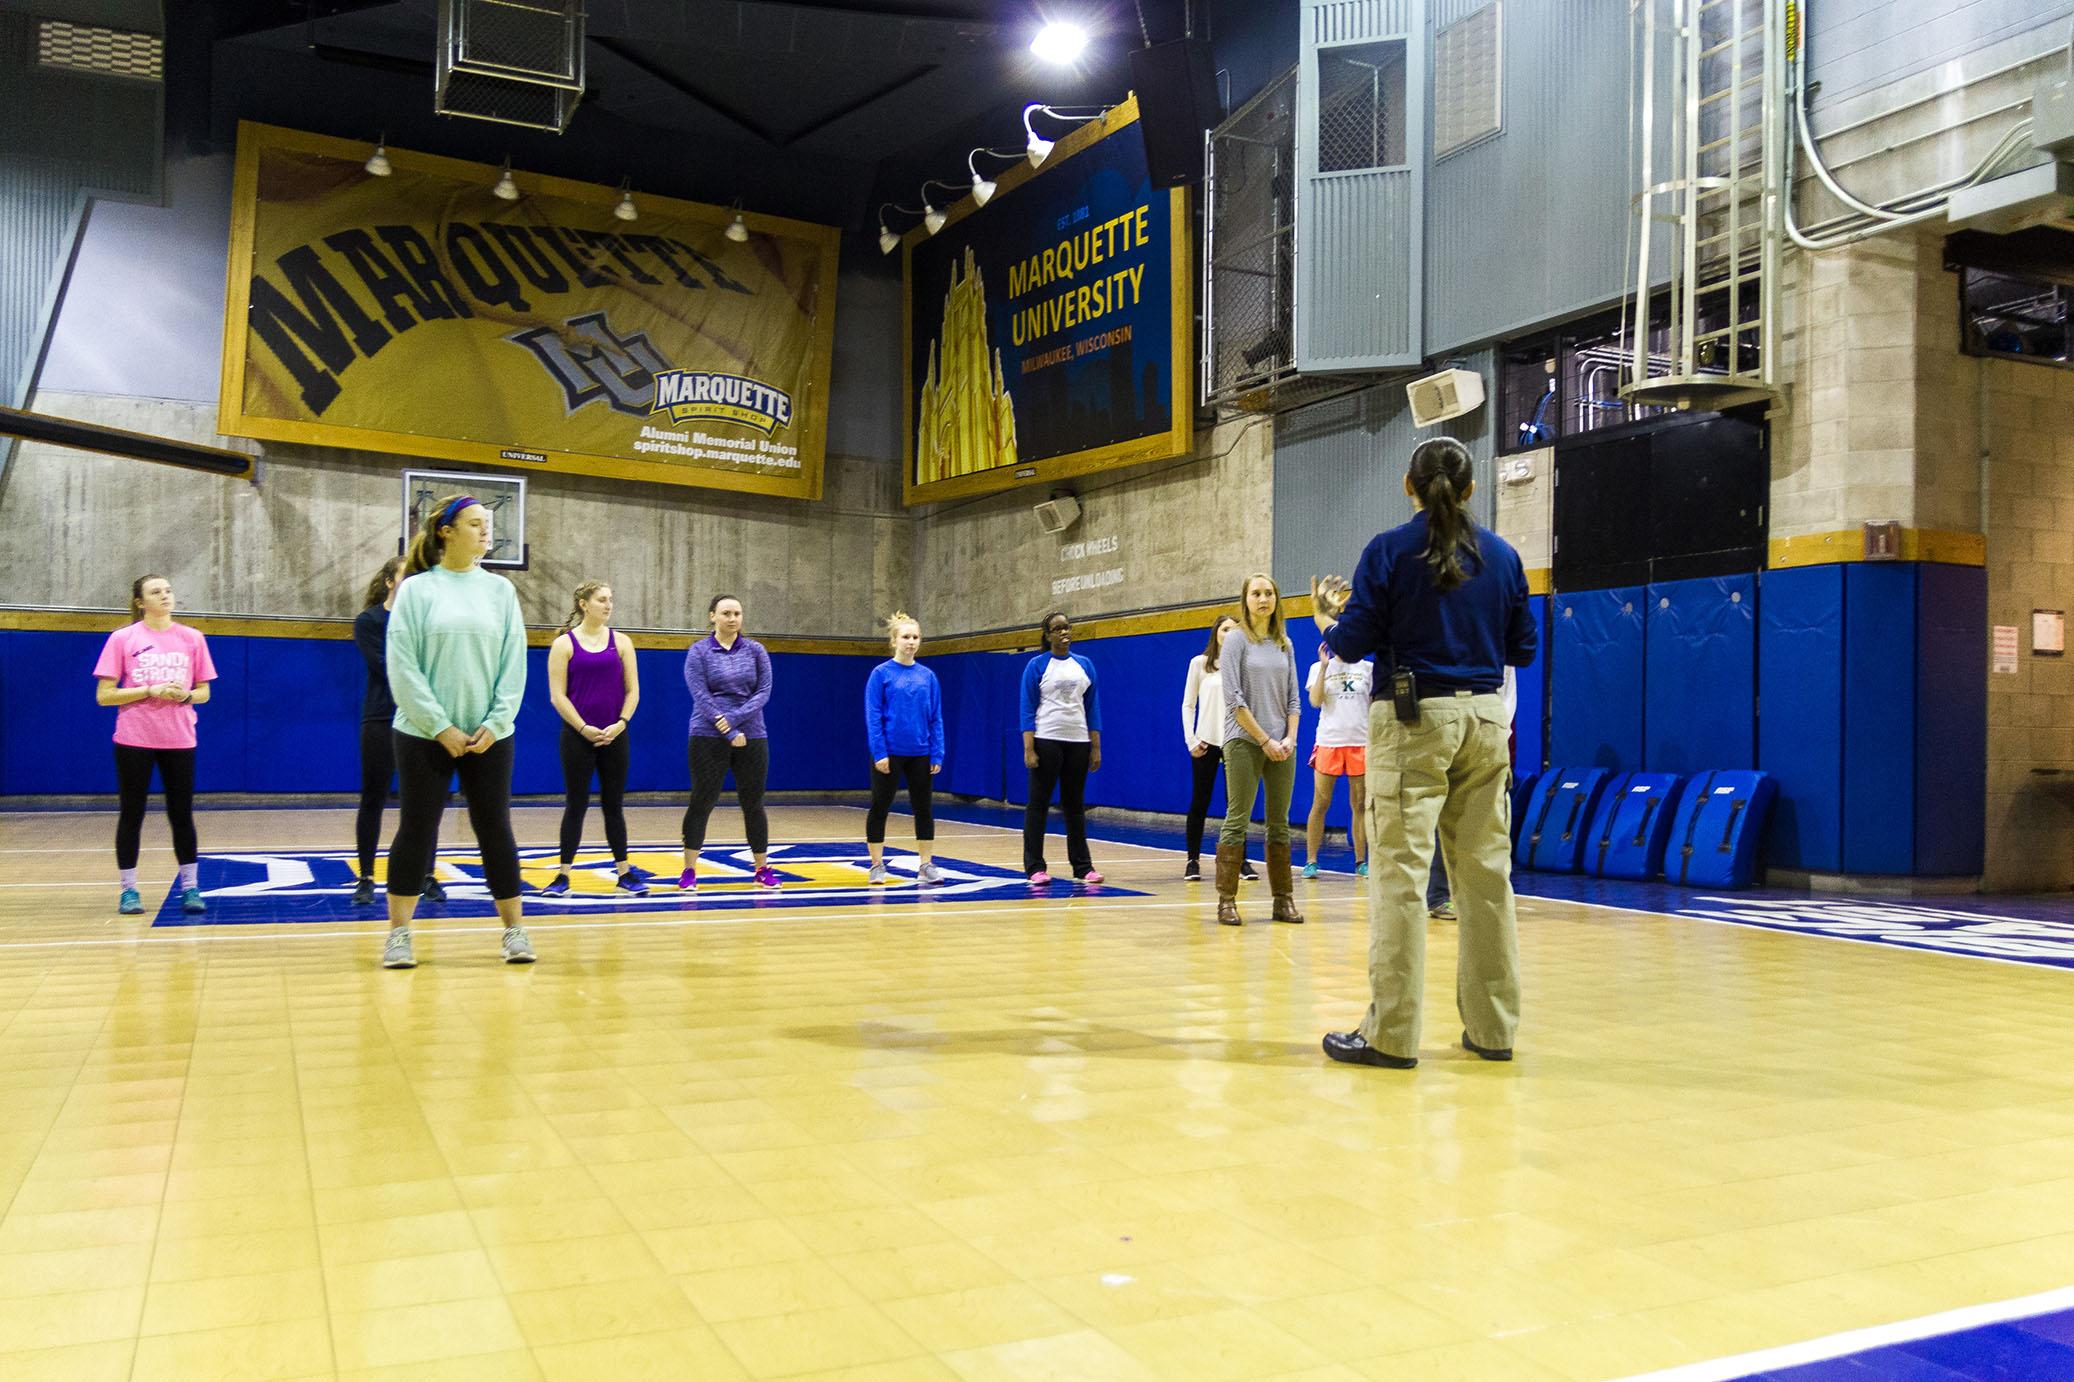 Students attend a MUSG sponsored self-defense class Feb. 10